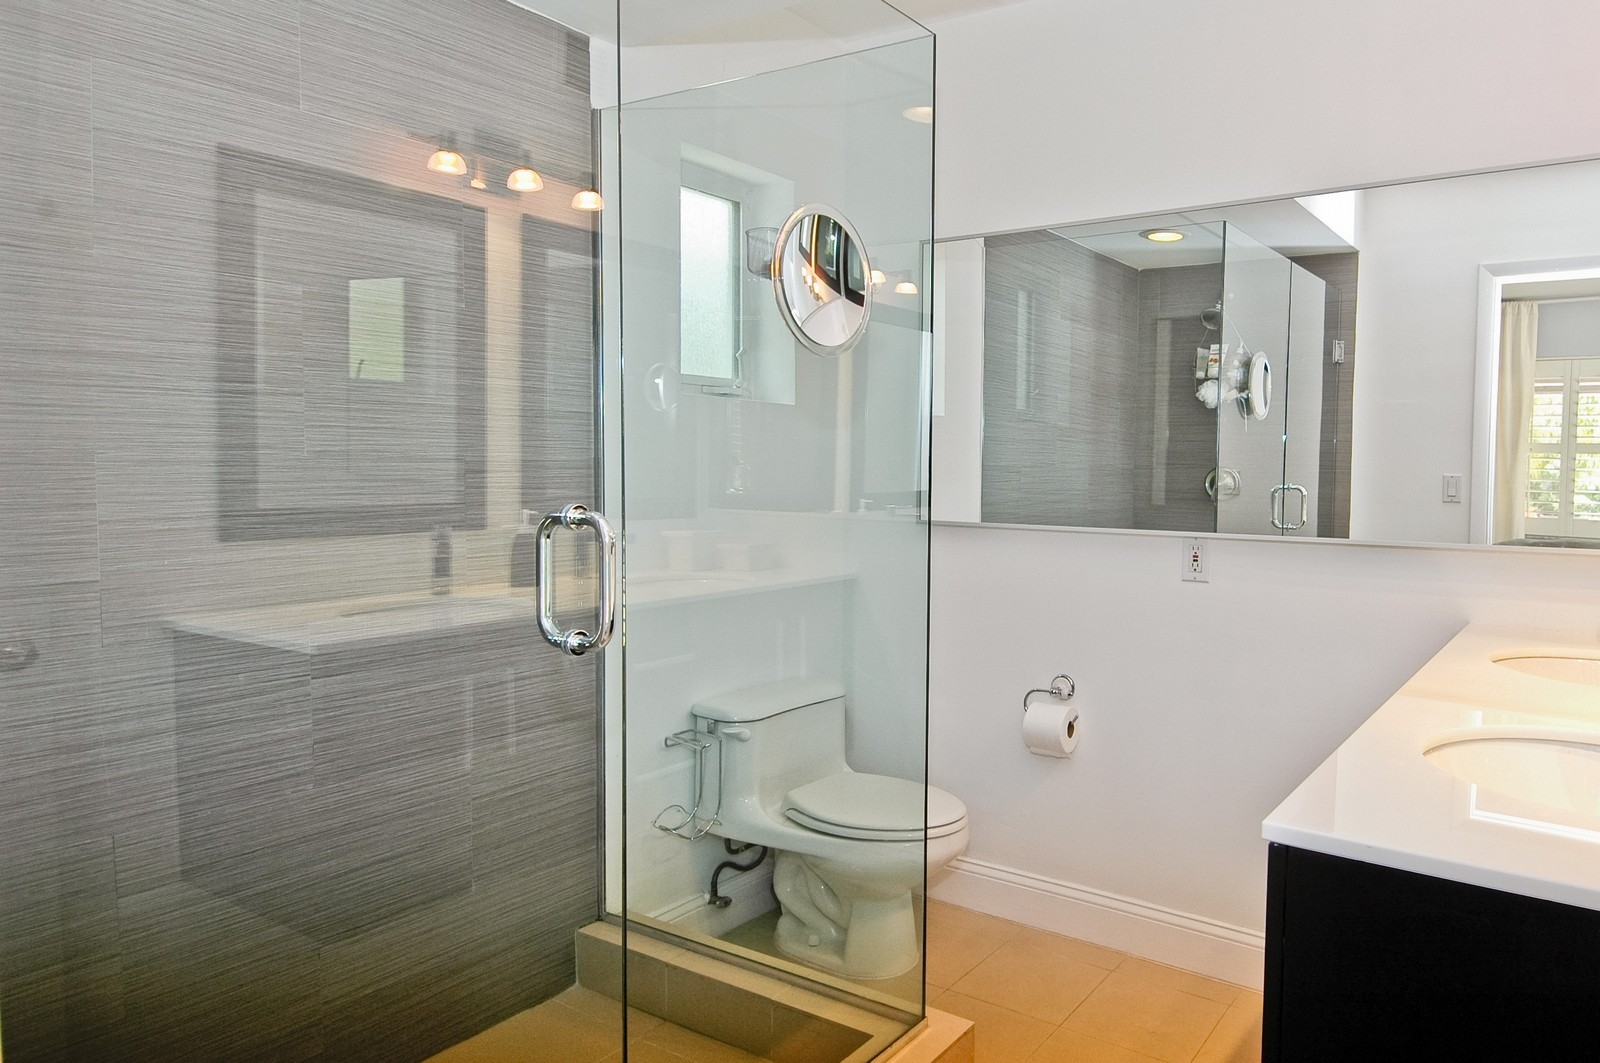 Real Estate Photography - 1500 Cleveland Rd, Miami Beach, FL, 33141 - Master Bathroom